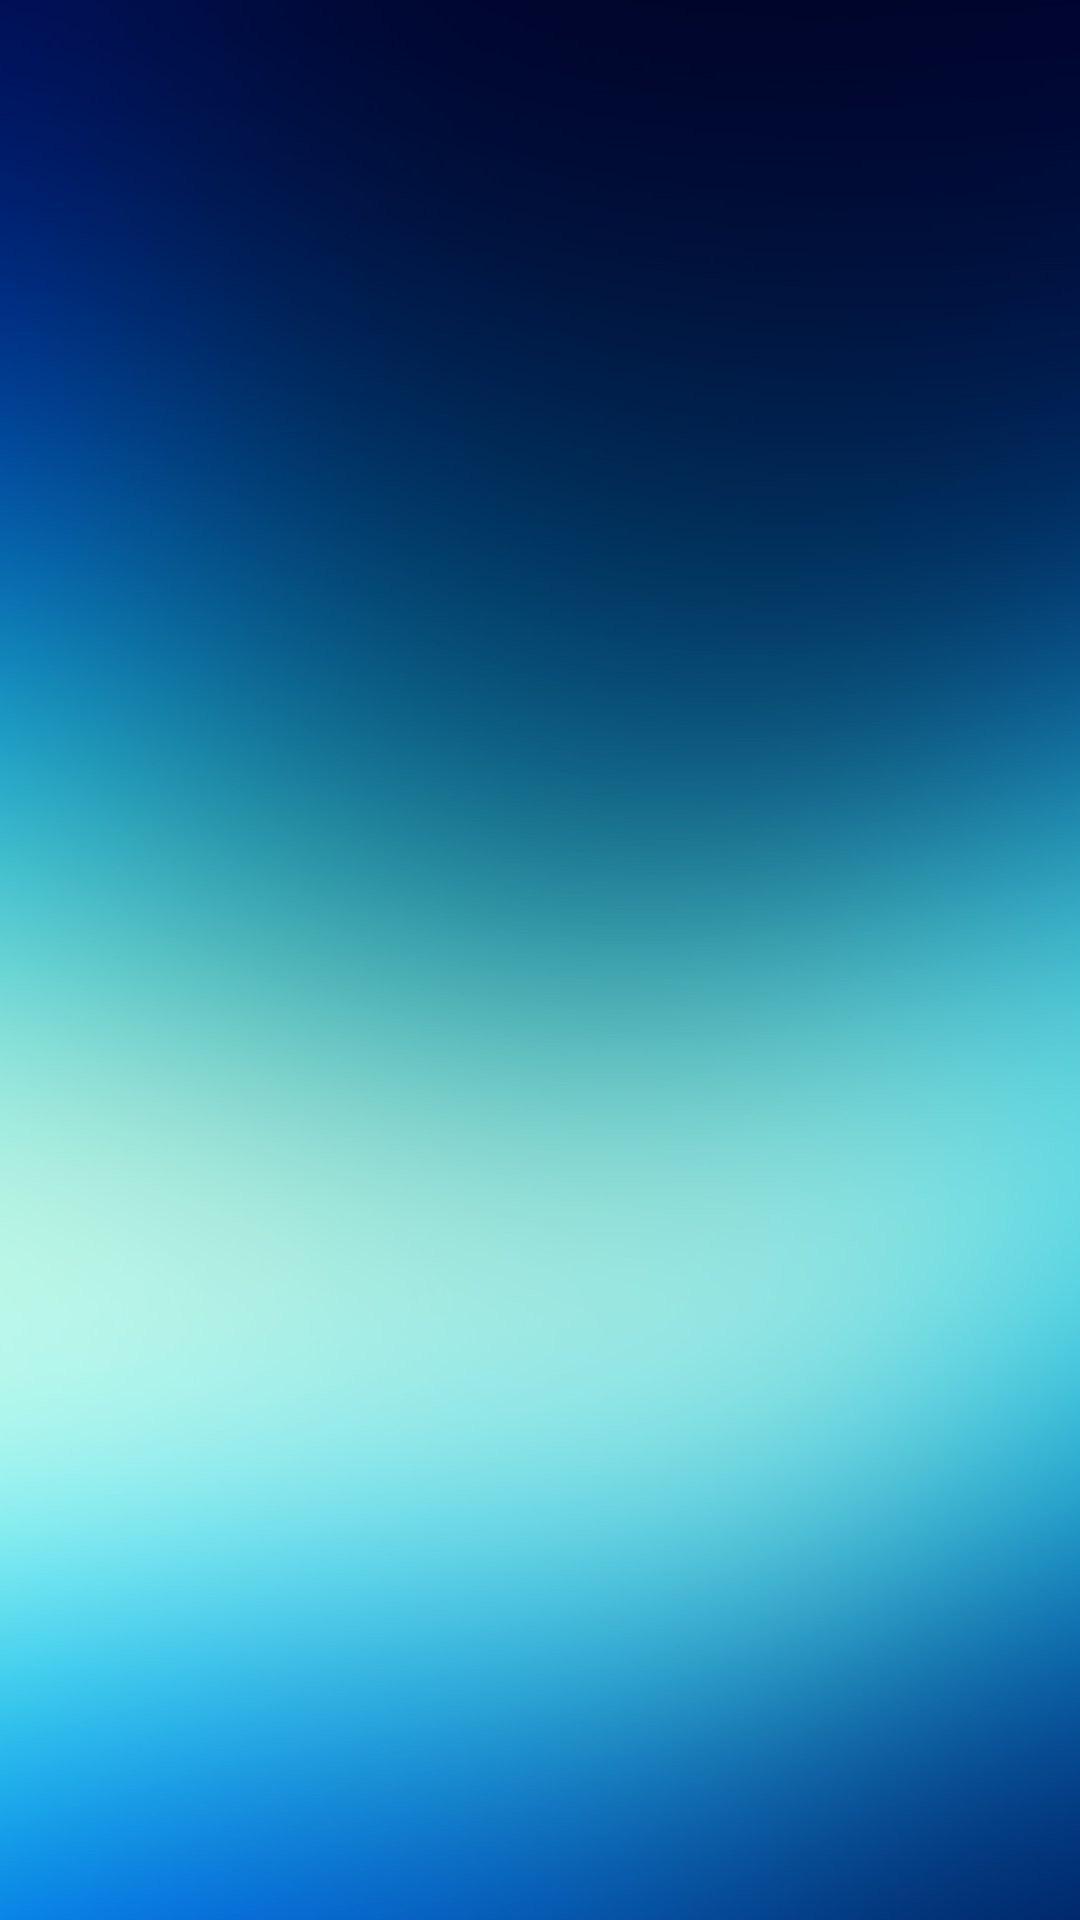 1080x1920 Blue Blur iPhone 6 Plus Wallpaper 26343 - Abstract iPhone 6 Plus Wallpapers